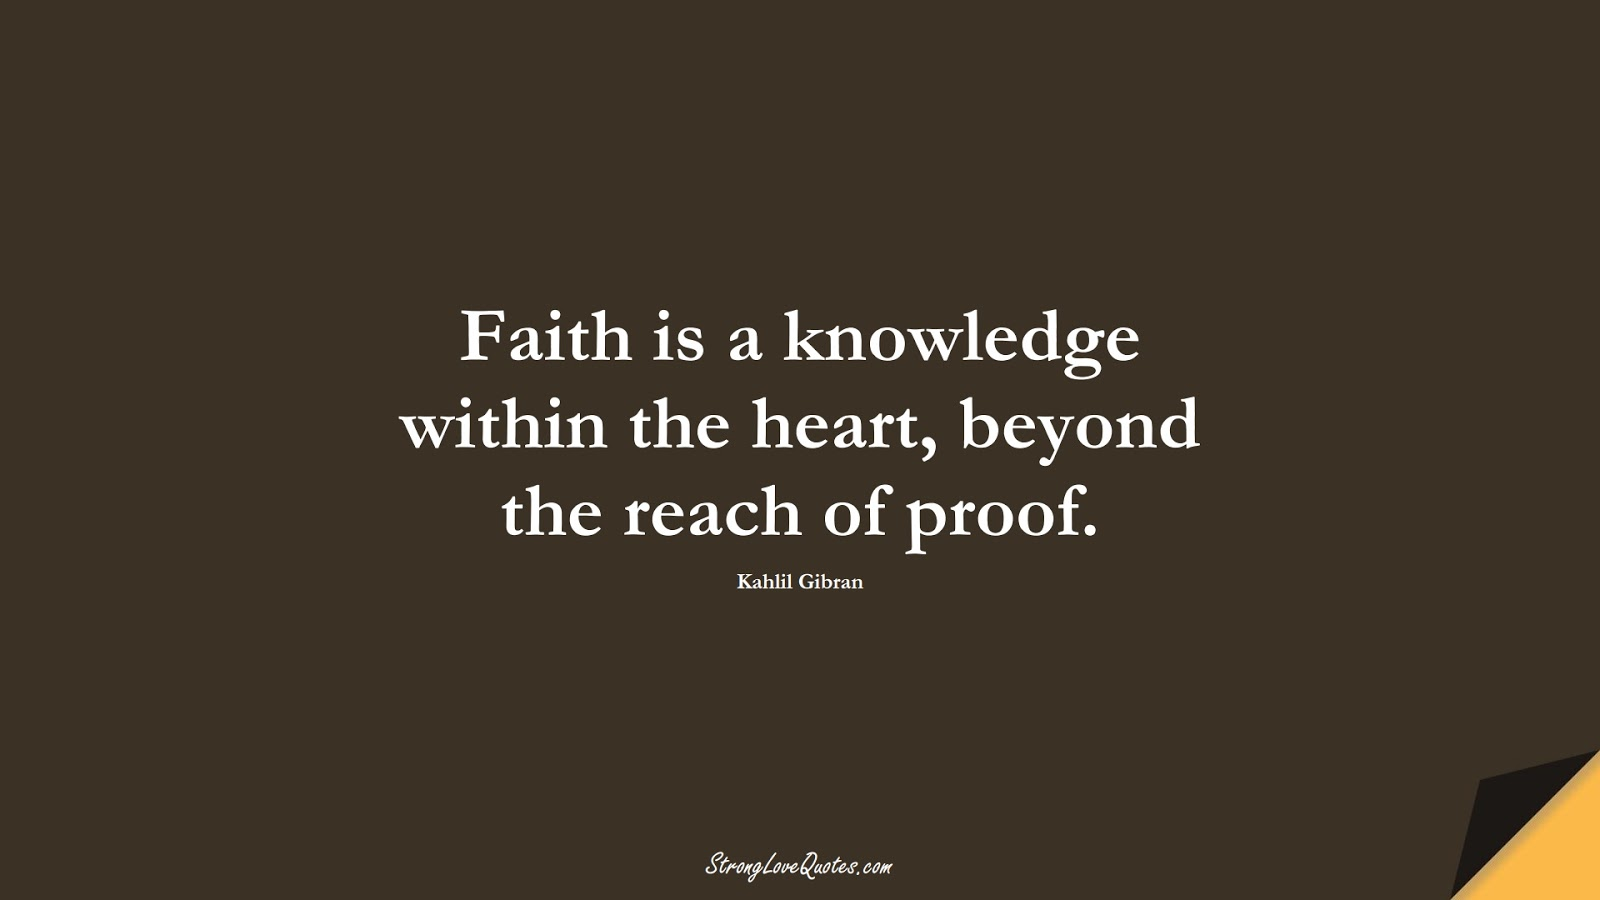 Faith is a knowledge within the heart, beyond the reach of proof. (Kahlil Gibran);  #KnowledgeQuotes